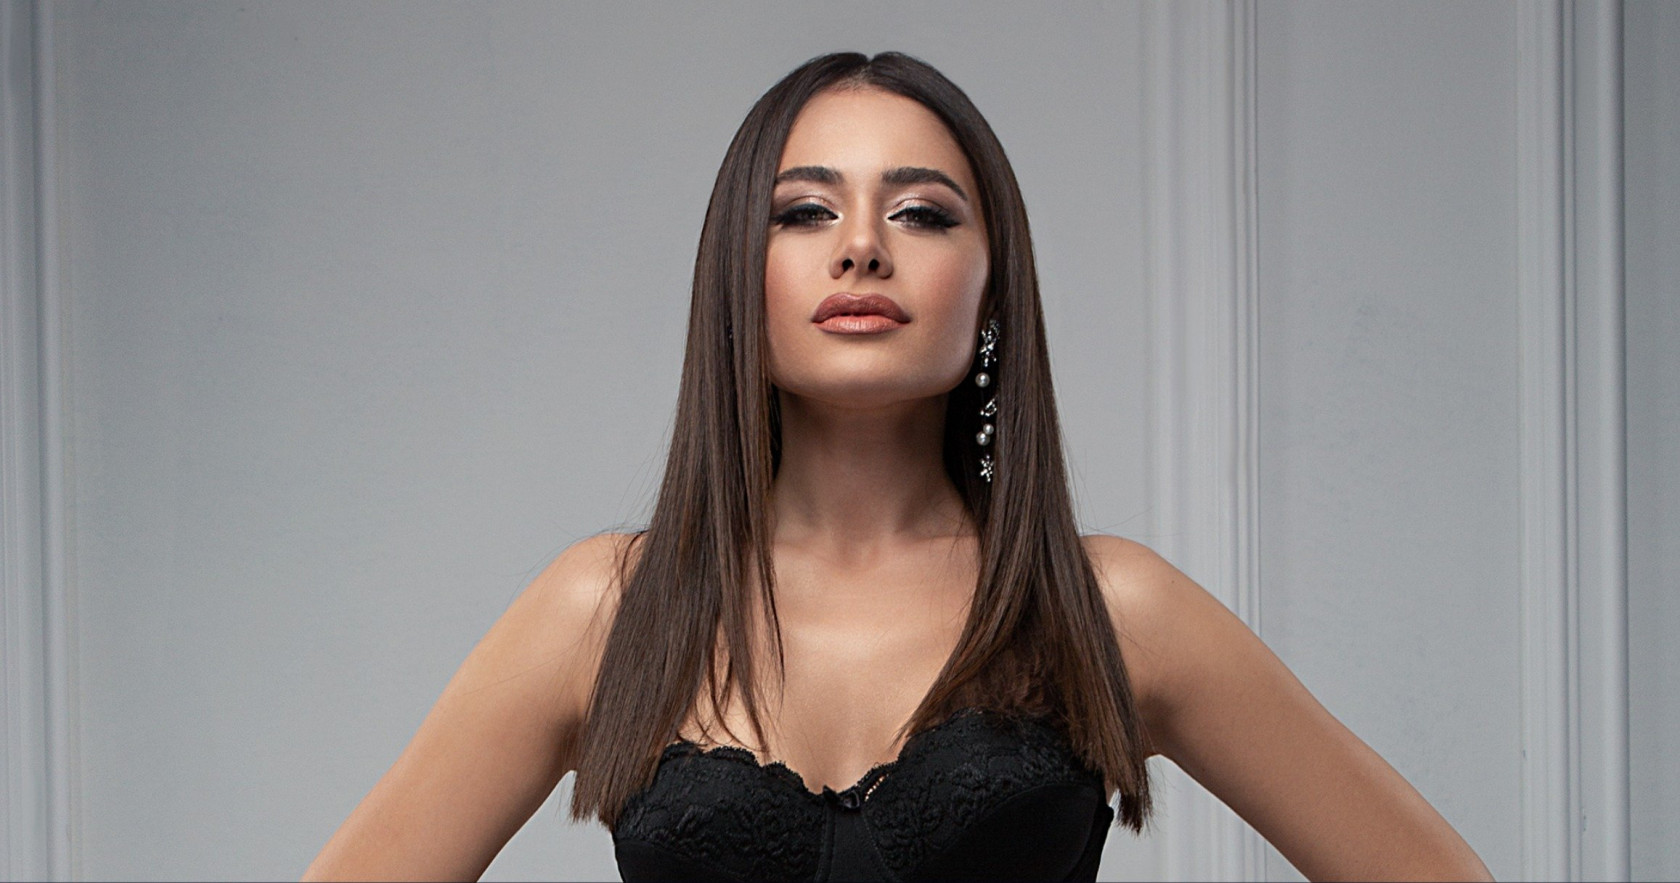 Azerbaijan: Ictimai opens the submissions for Efendi's Eurovision 2021 song